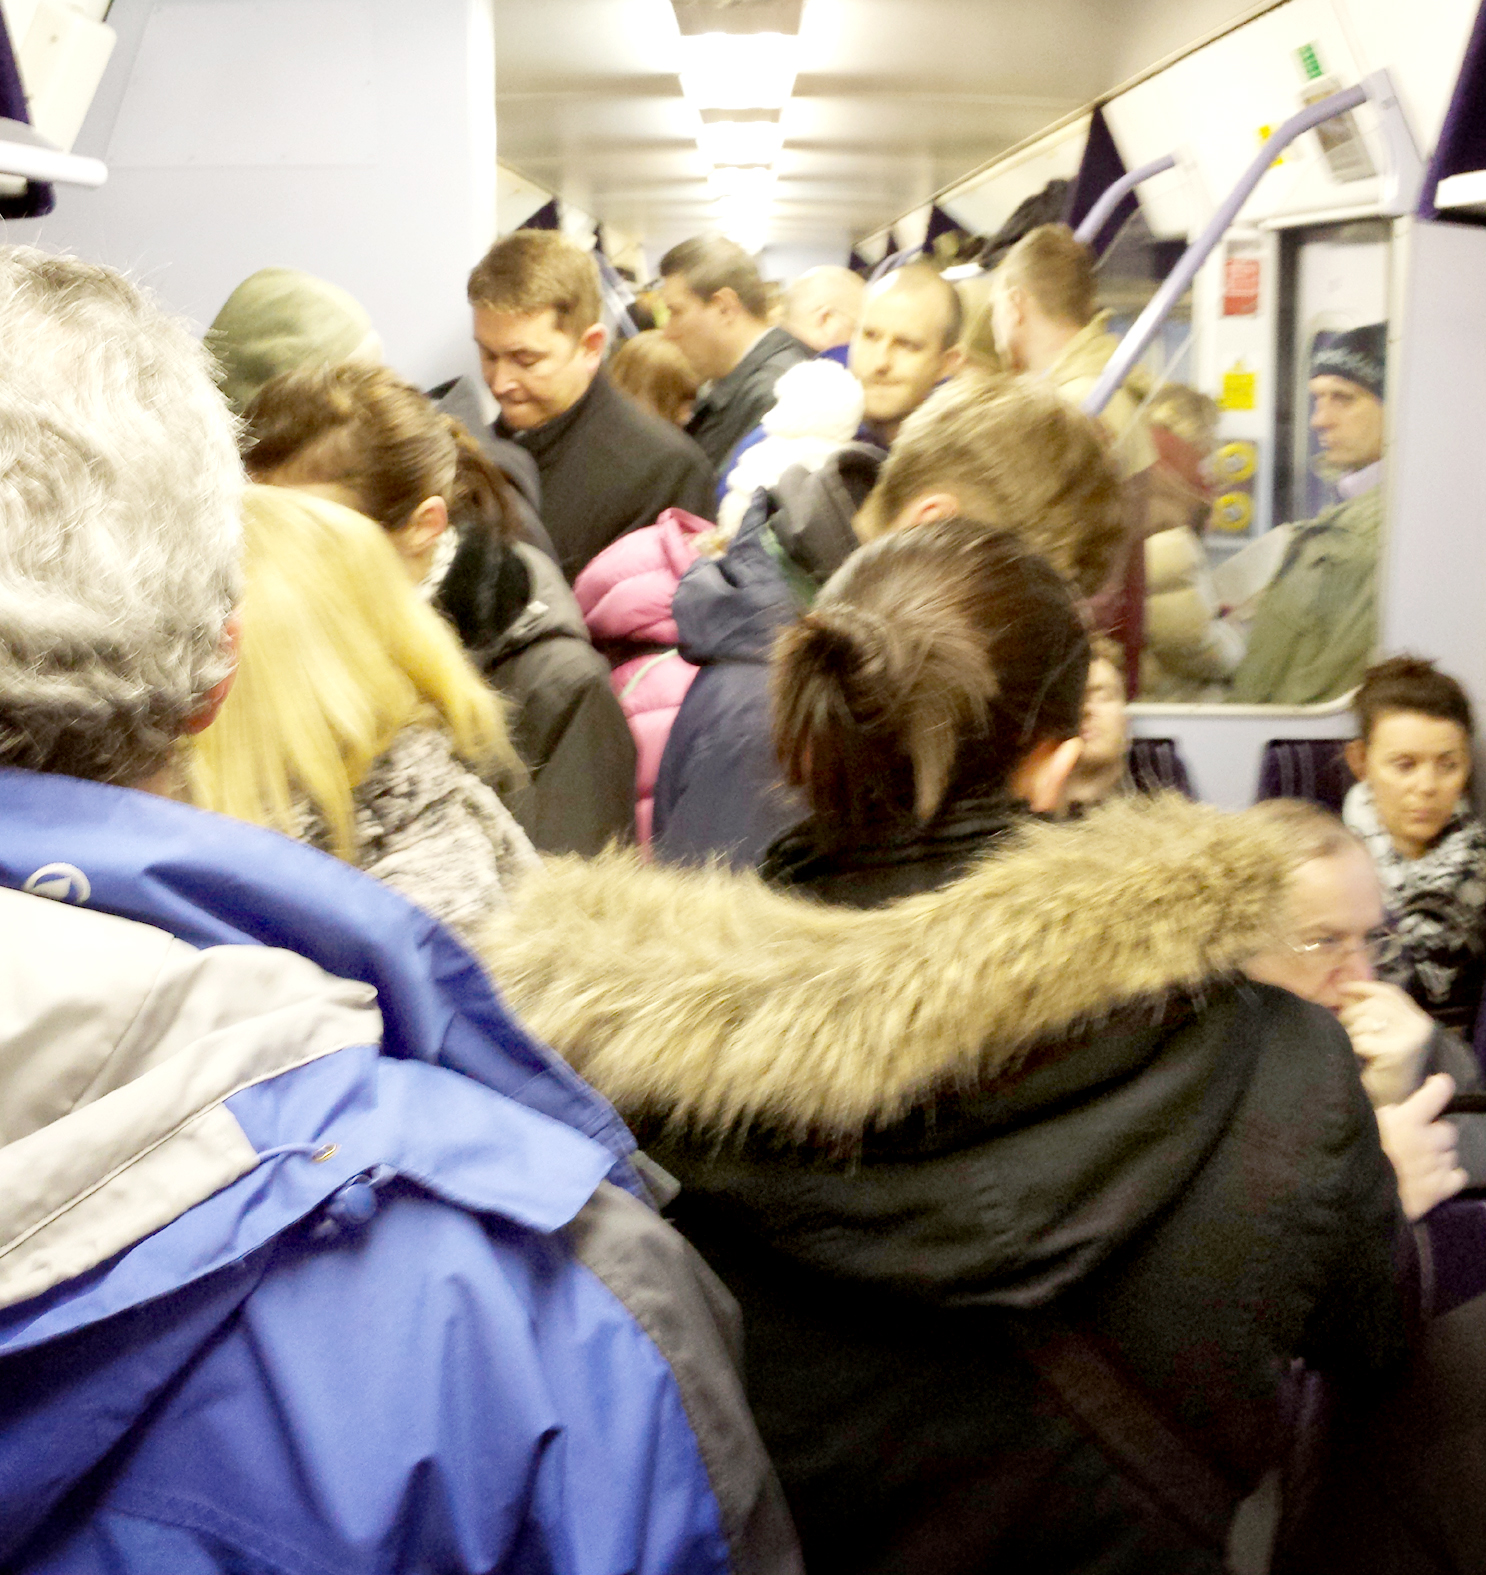 Passengers crammed on to a train